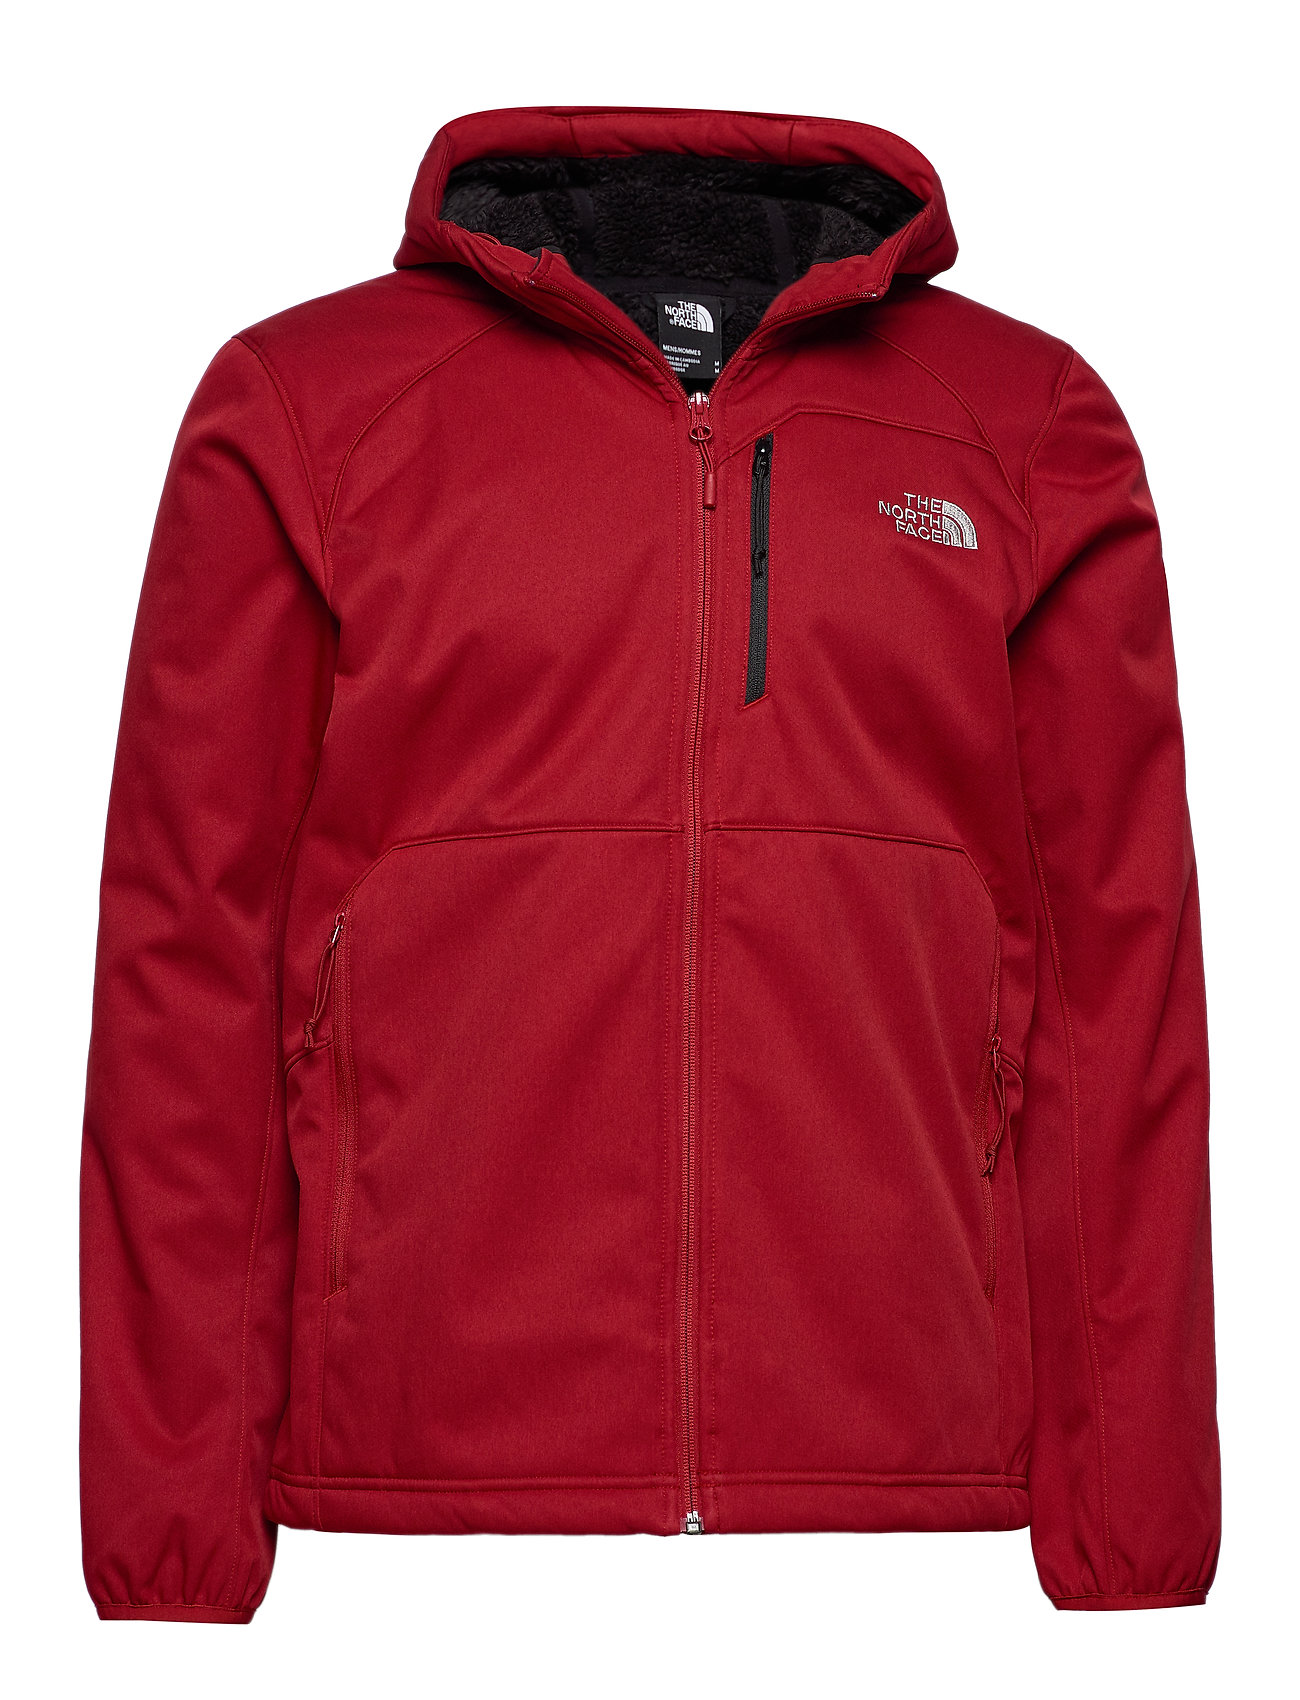 The North Face M QUEST HOODED SOFTS - CARDINAL RED HE